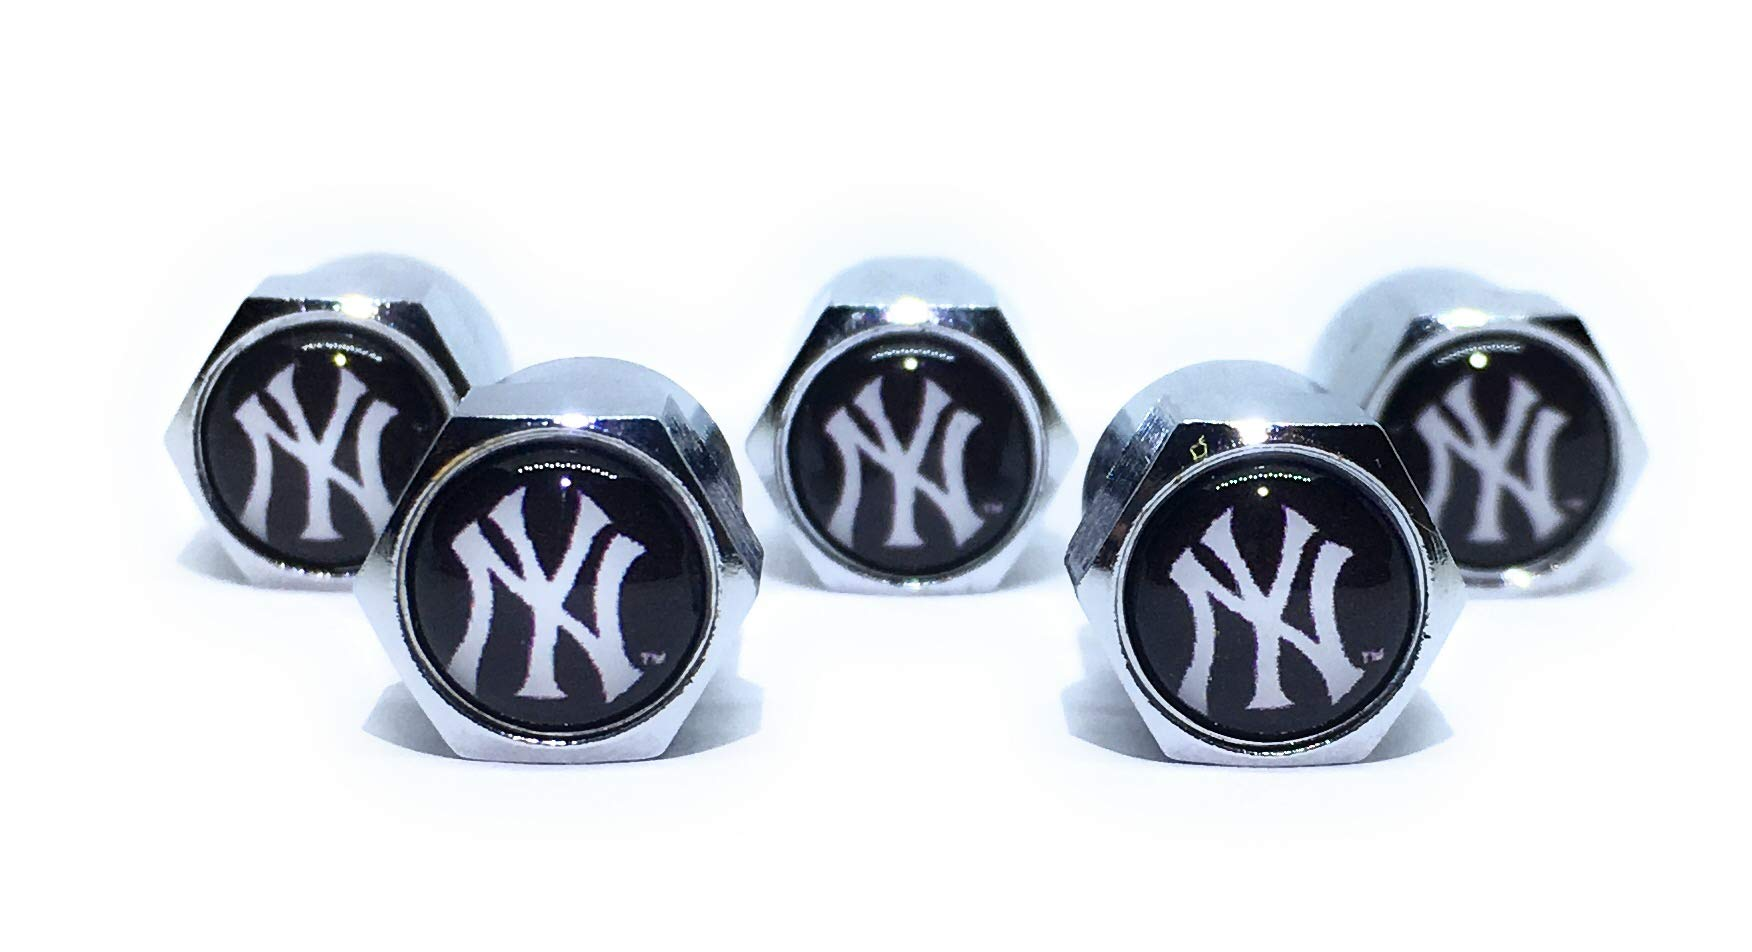 Buycleverly New York Yankees NY Metal Tire Valve Stem Caps Set/5 Pcs for Cars Sedan SUVs Compacts Luxury Pickups Truck Motorcycles by Buycleverly